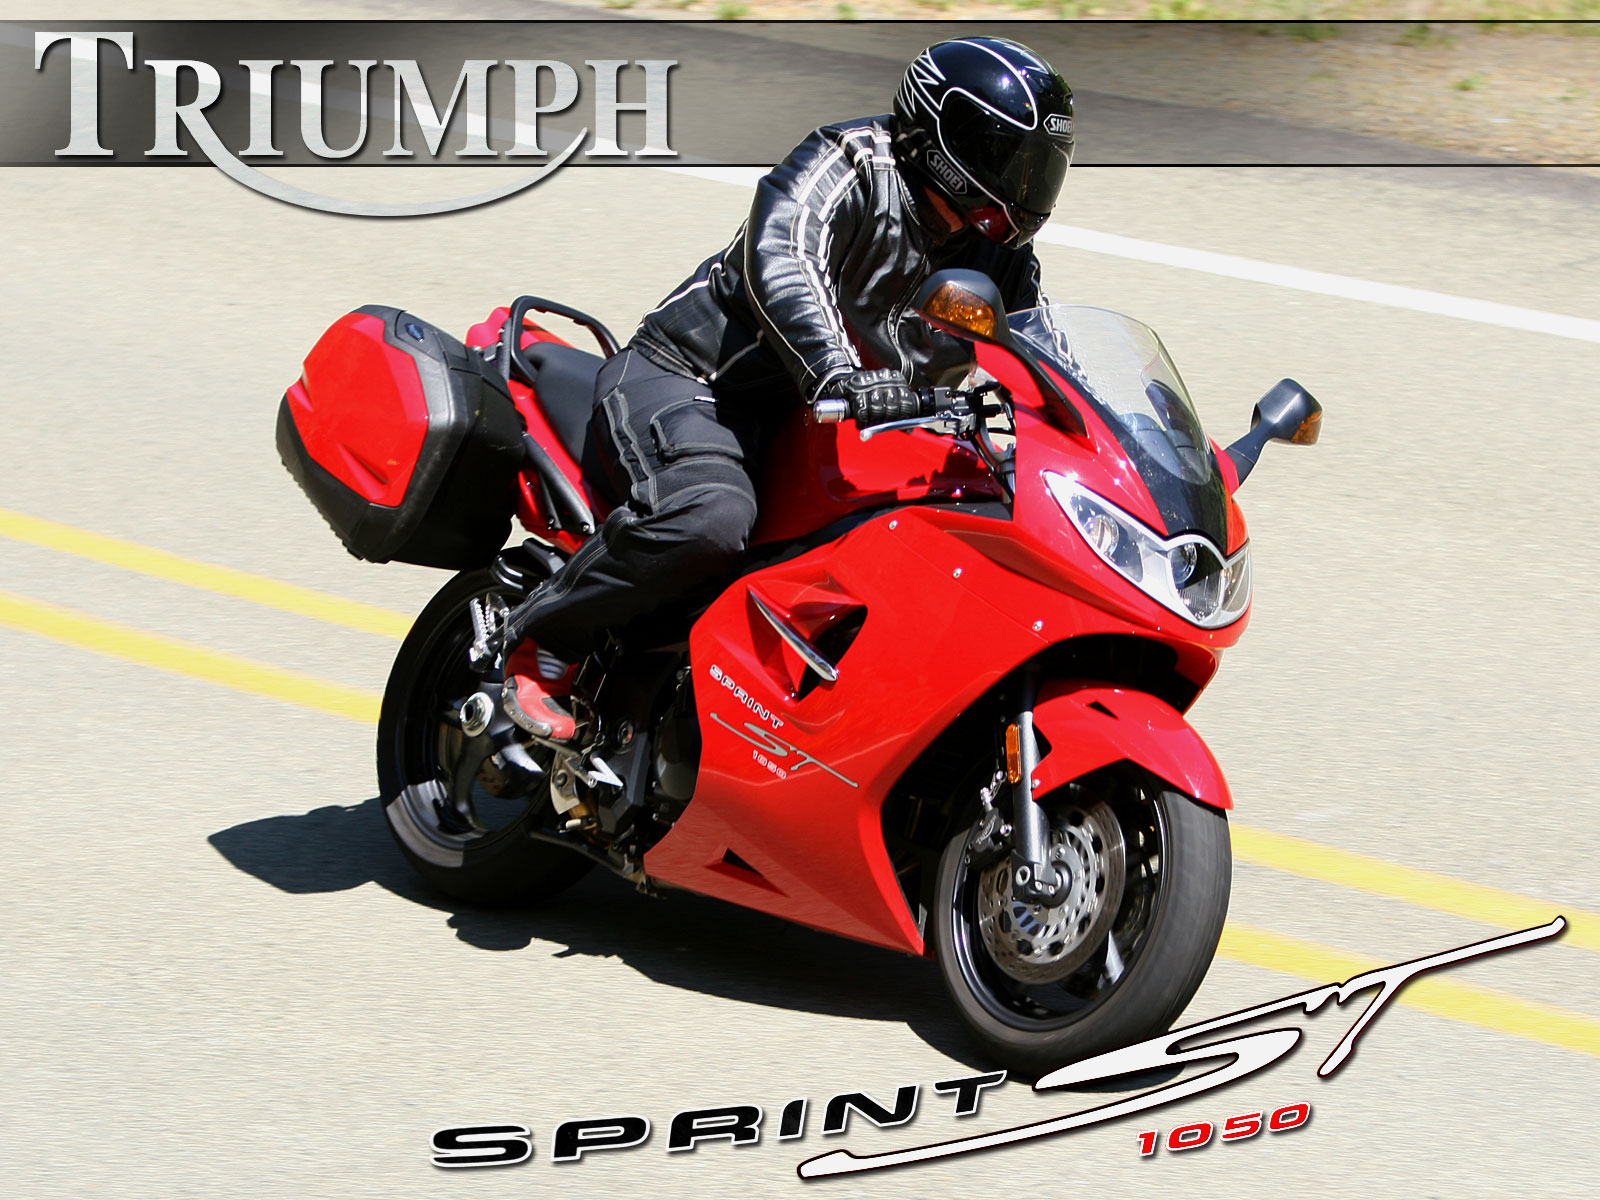 Triumph Sprint ST 1050 ABS 2009 images #126364